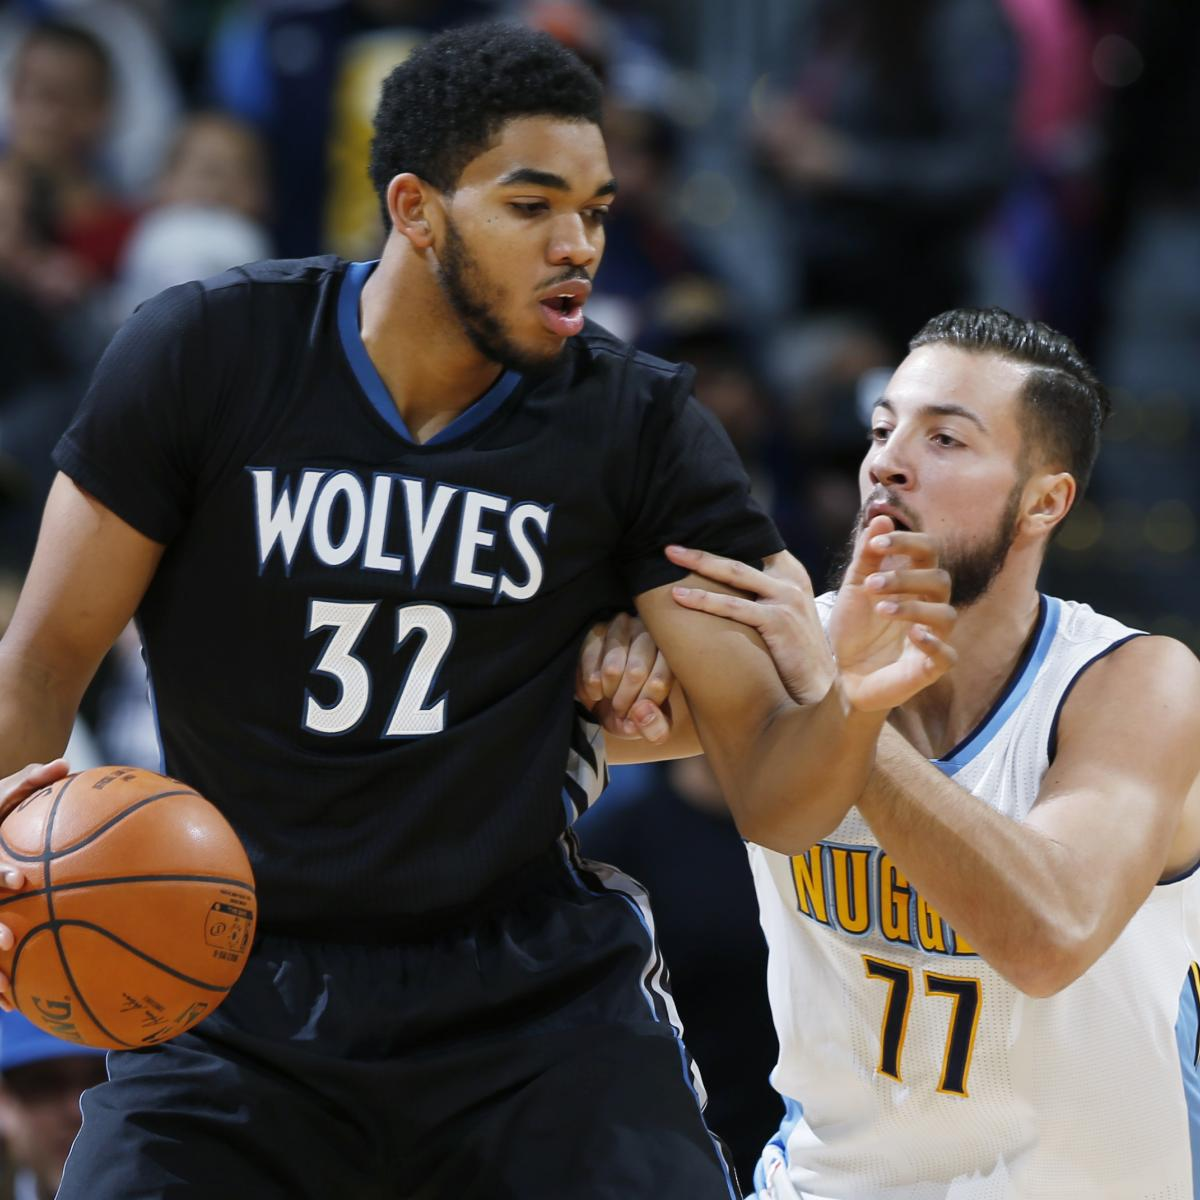 Denver Nuggets Xm Radio: Timberwolves Vs. Nuggets: Score, Video Highlights And